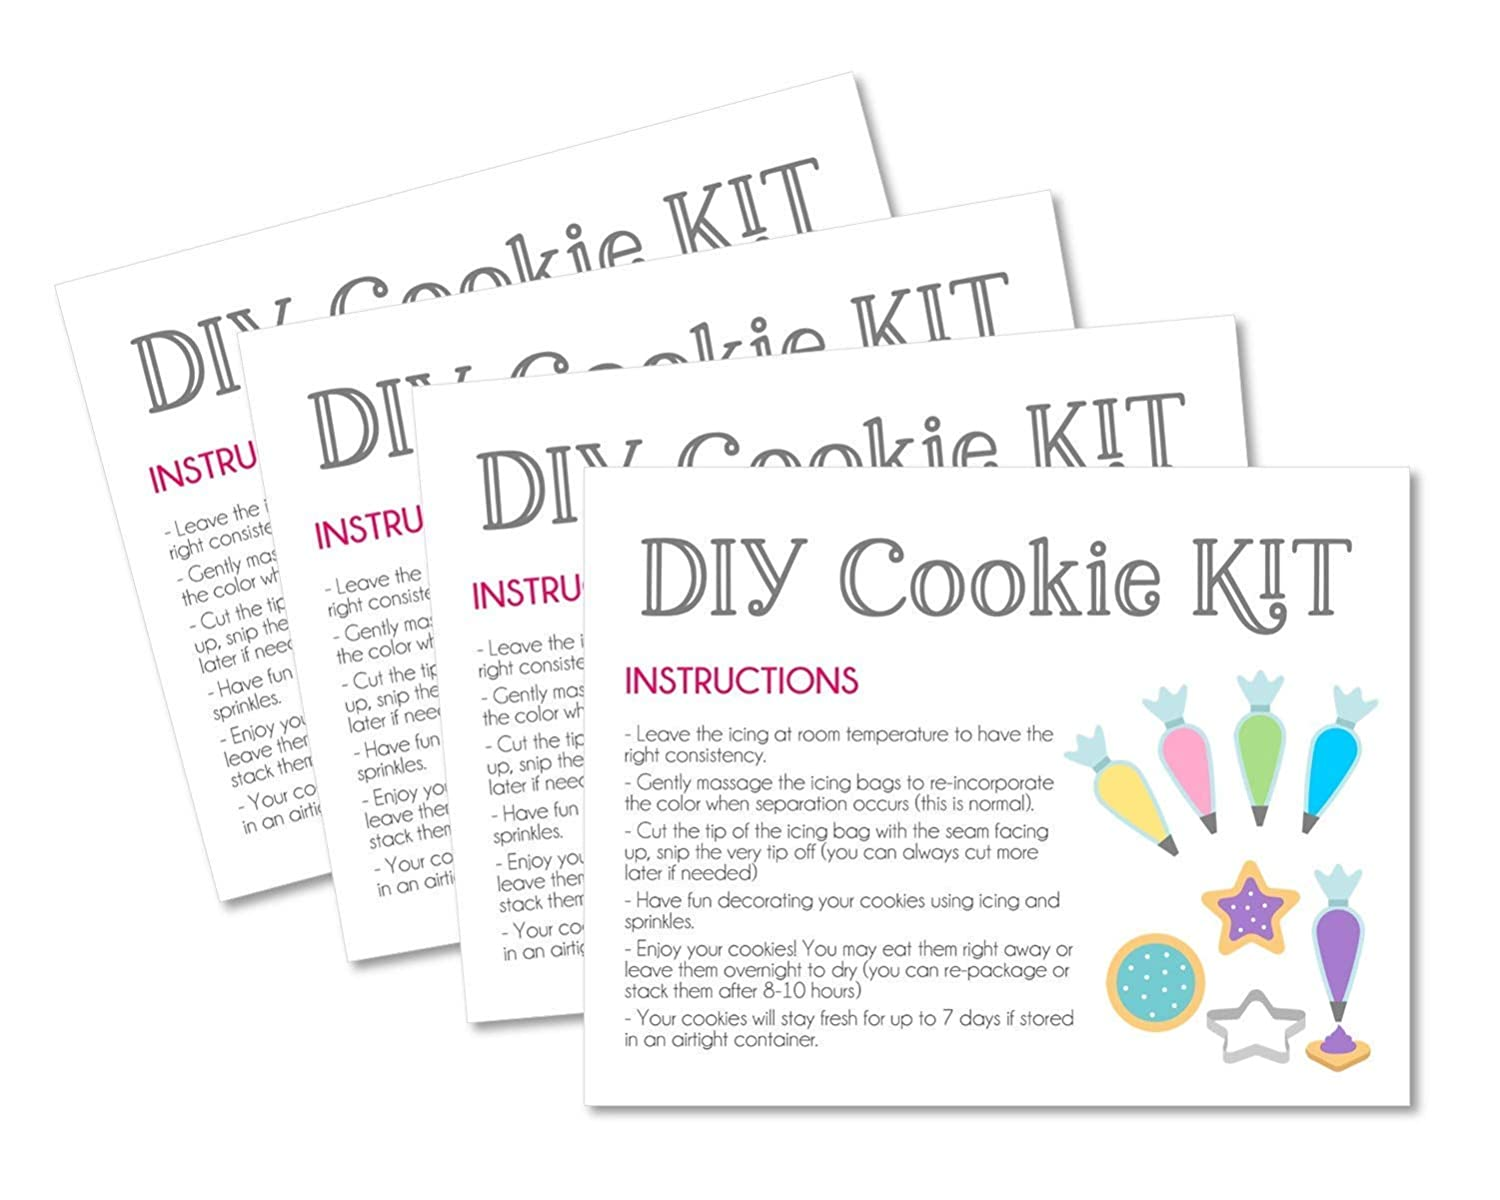 Cookie cards with instructions for DIY decorating. Instructions cards for DIY Cookie Kit